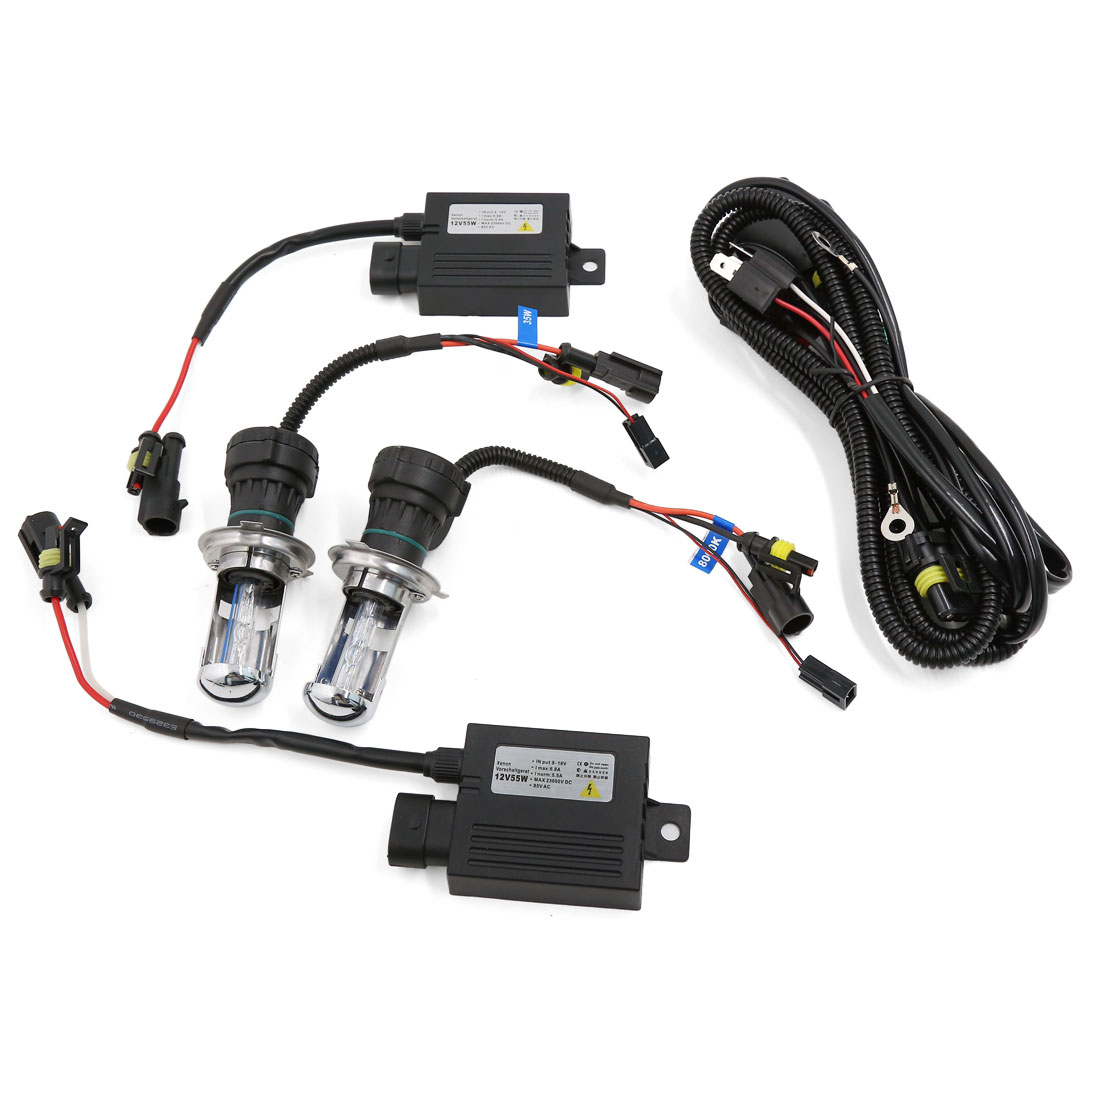 Auto 8000K H4 Hi/Lo Dual Beam Bi-Xenon HID Lamp Bulb Slim Conversion Kit 12V 55W